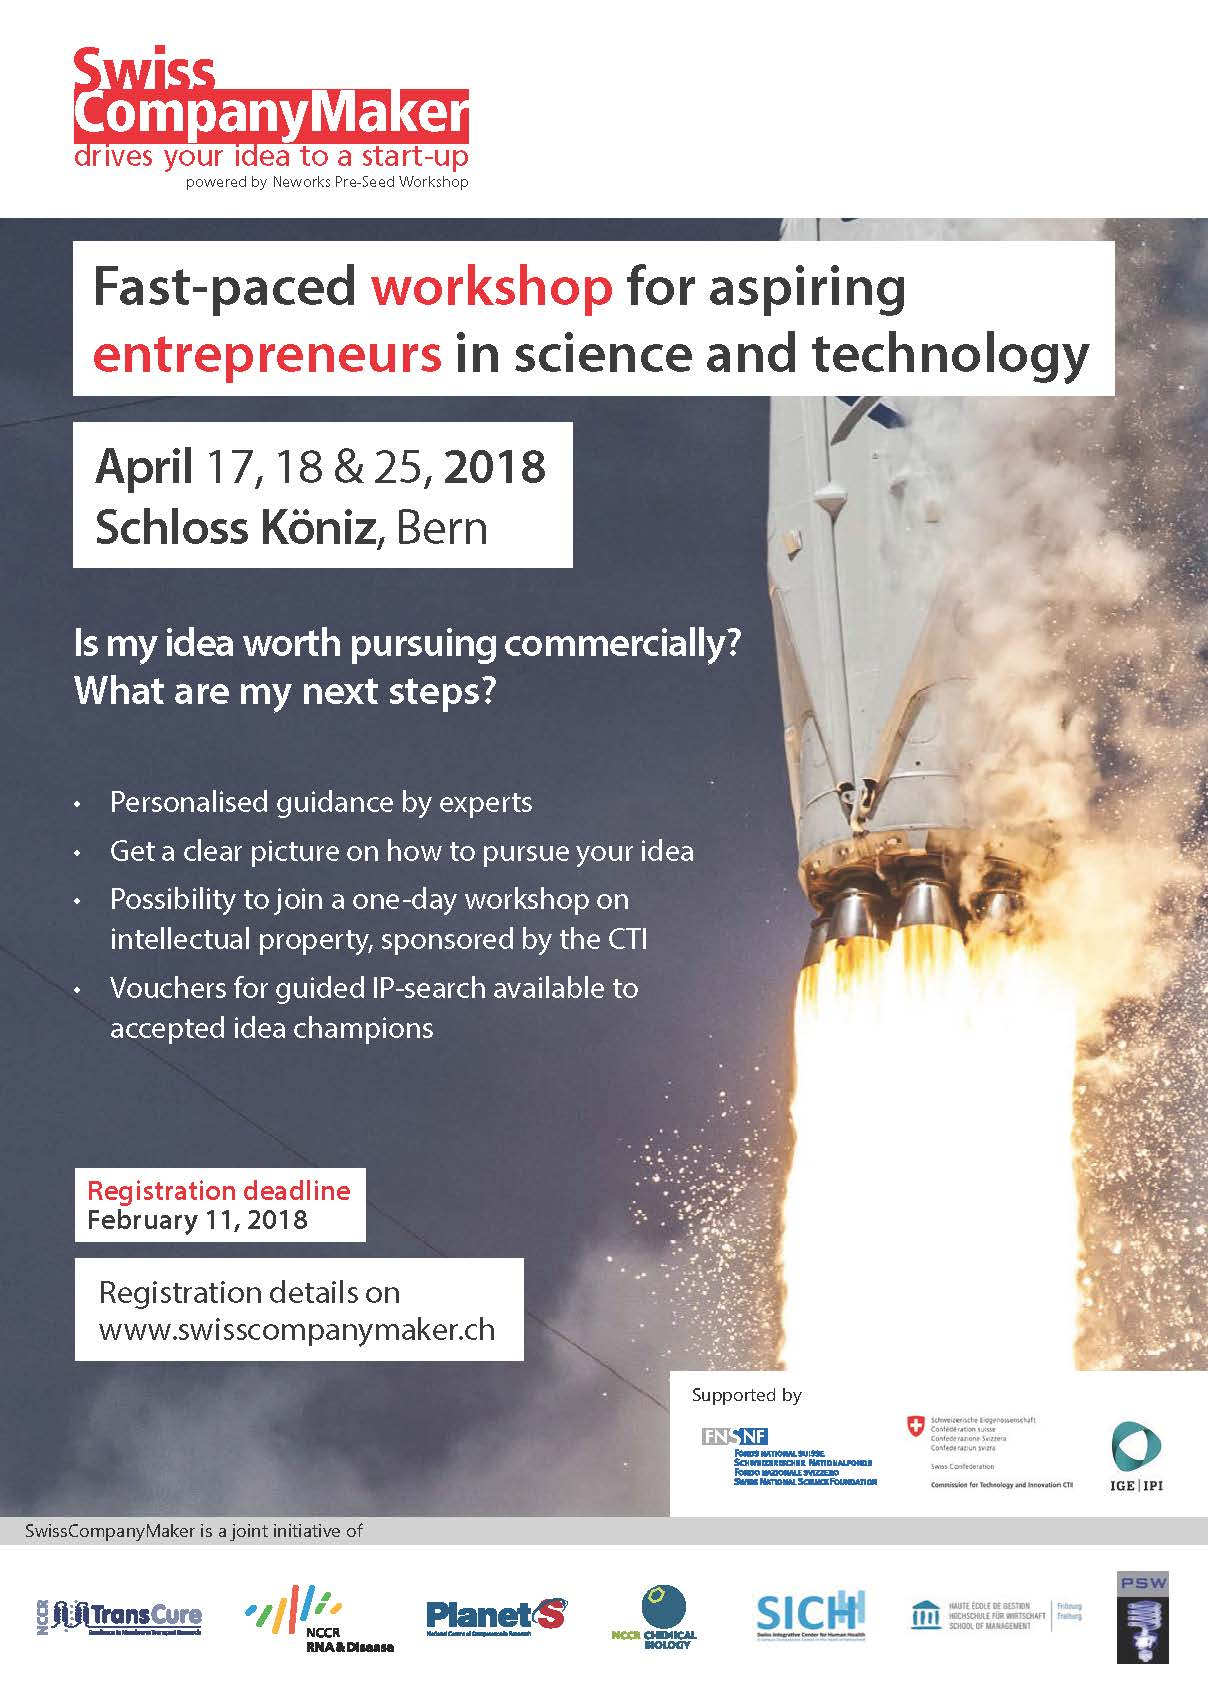 Poster announcing the Fast-paced workshop for aspiring entrepreneurs in science and technology